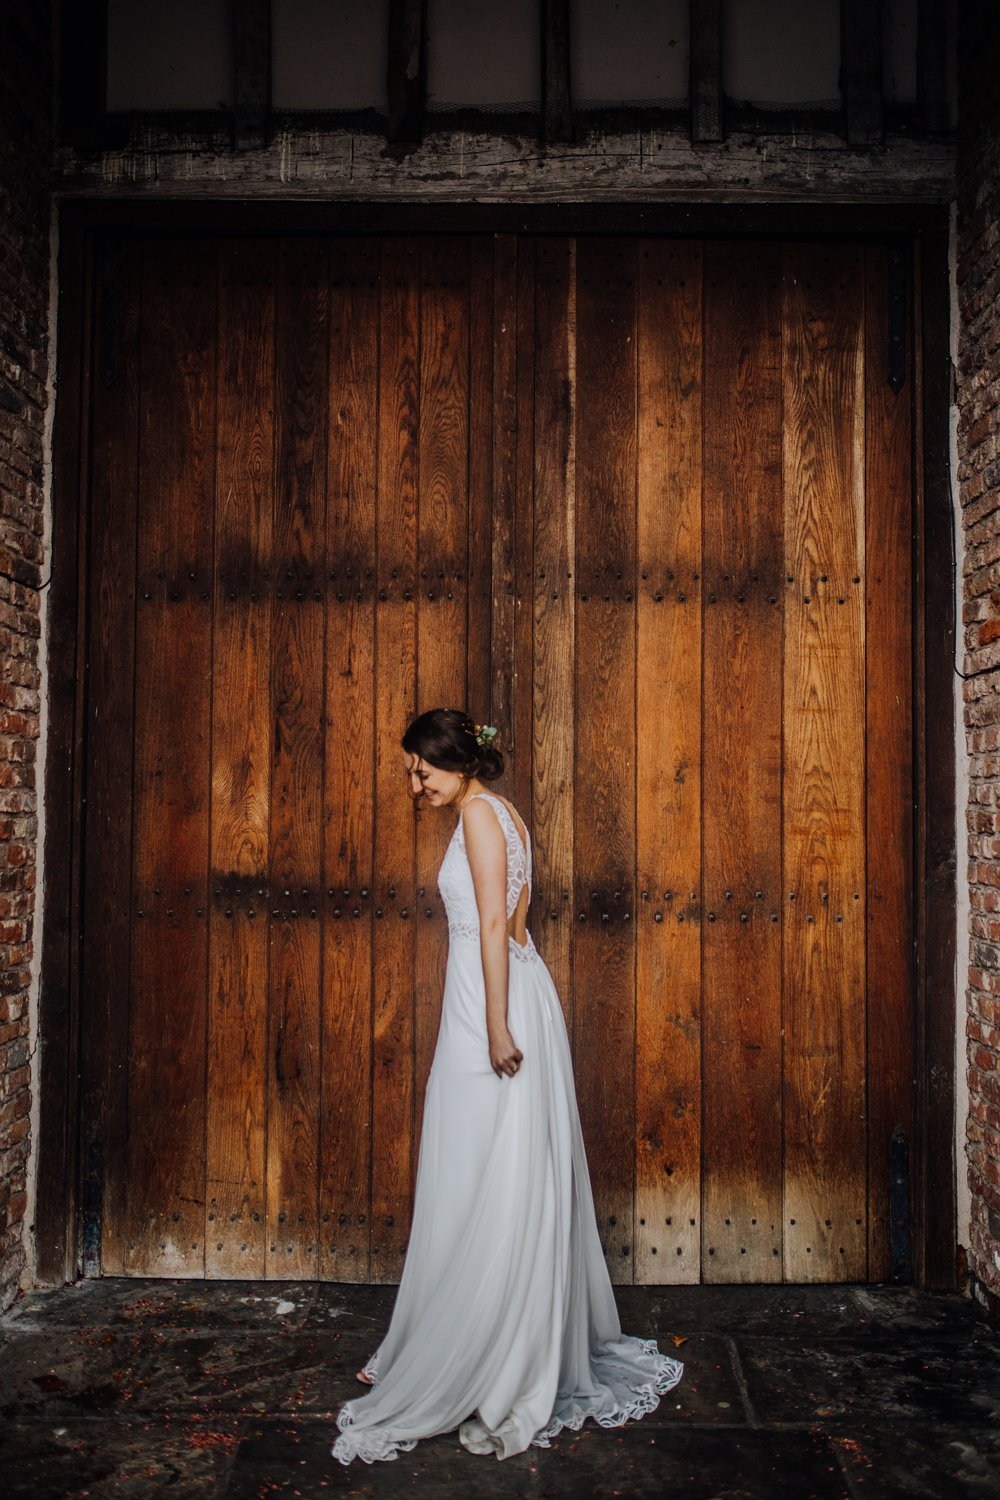 A rainy barn wedding at Meols Hall - Southport